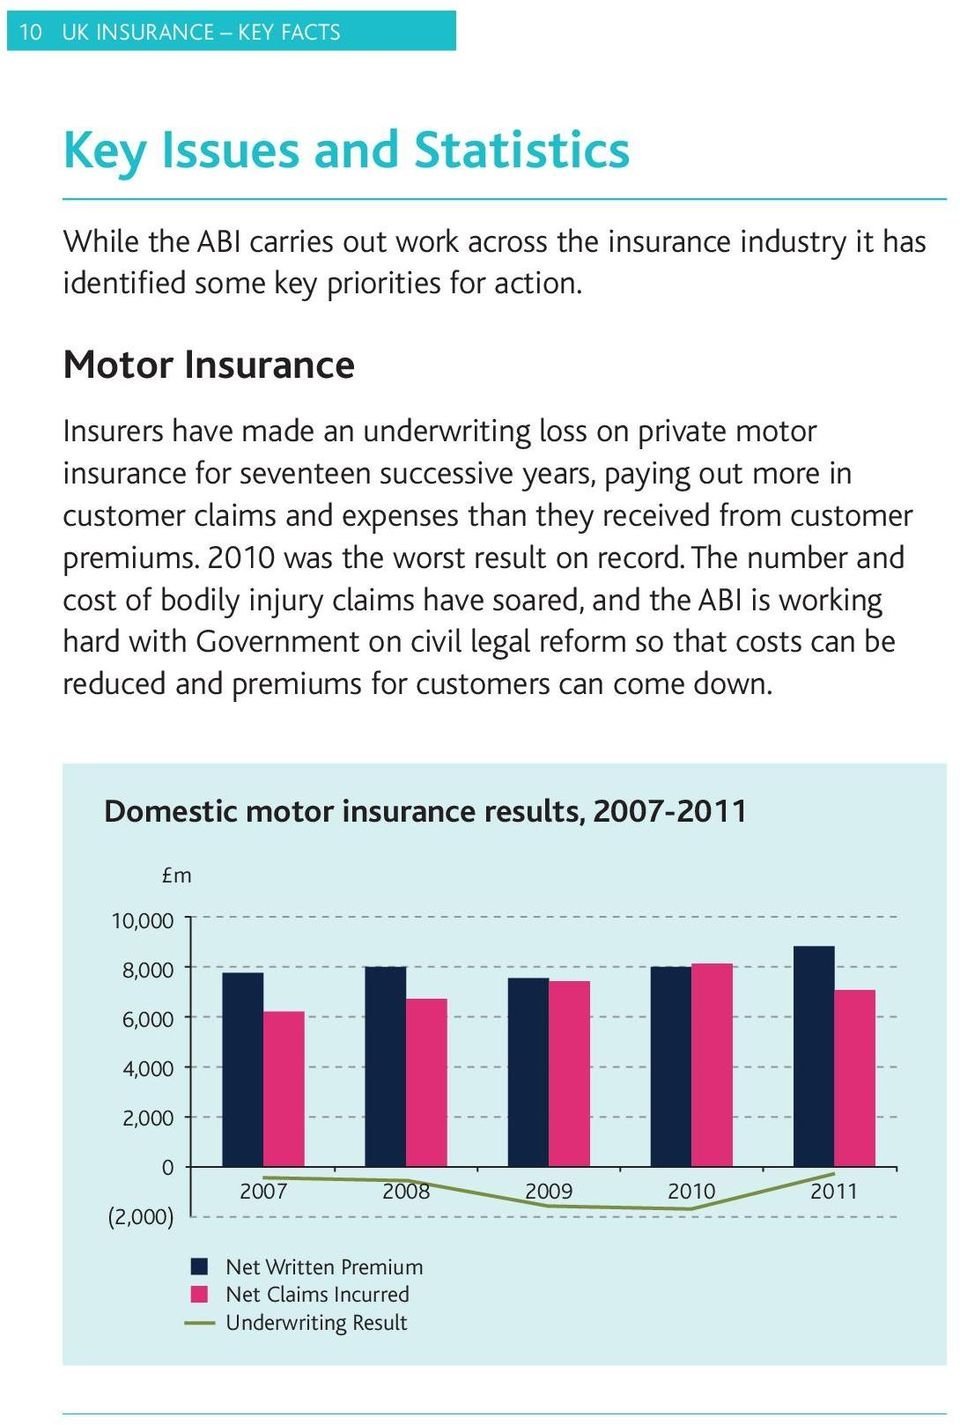 customer premiums. 2010 was the worst result on record.